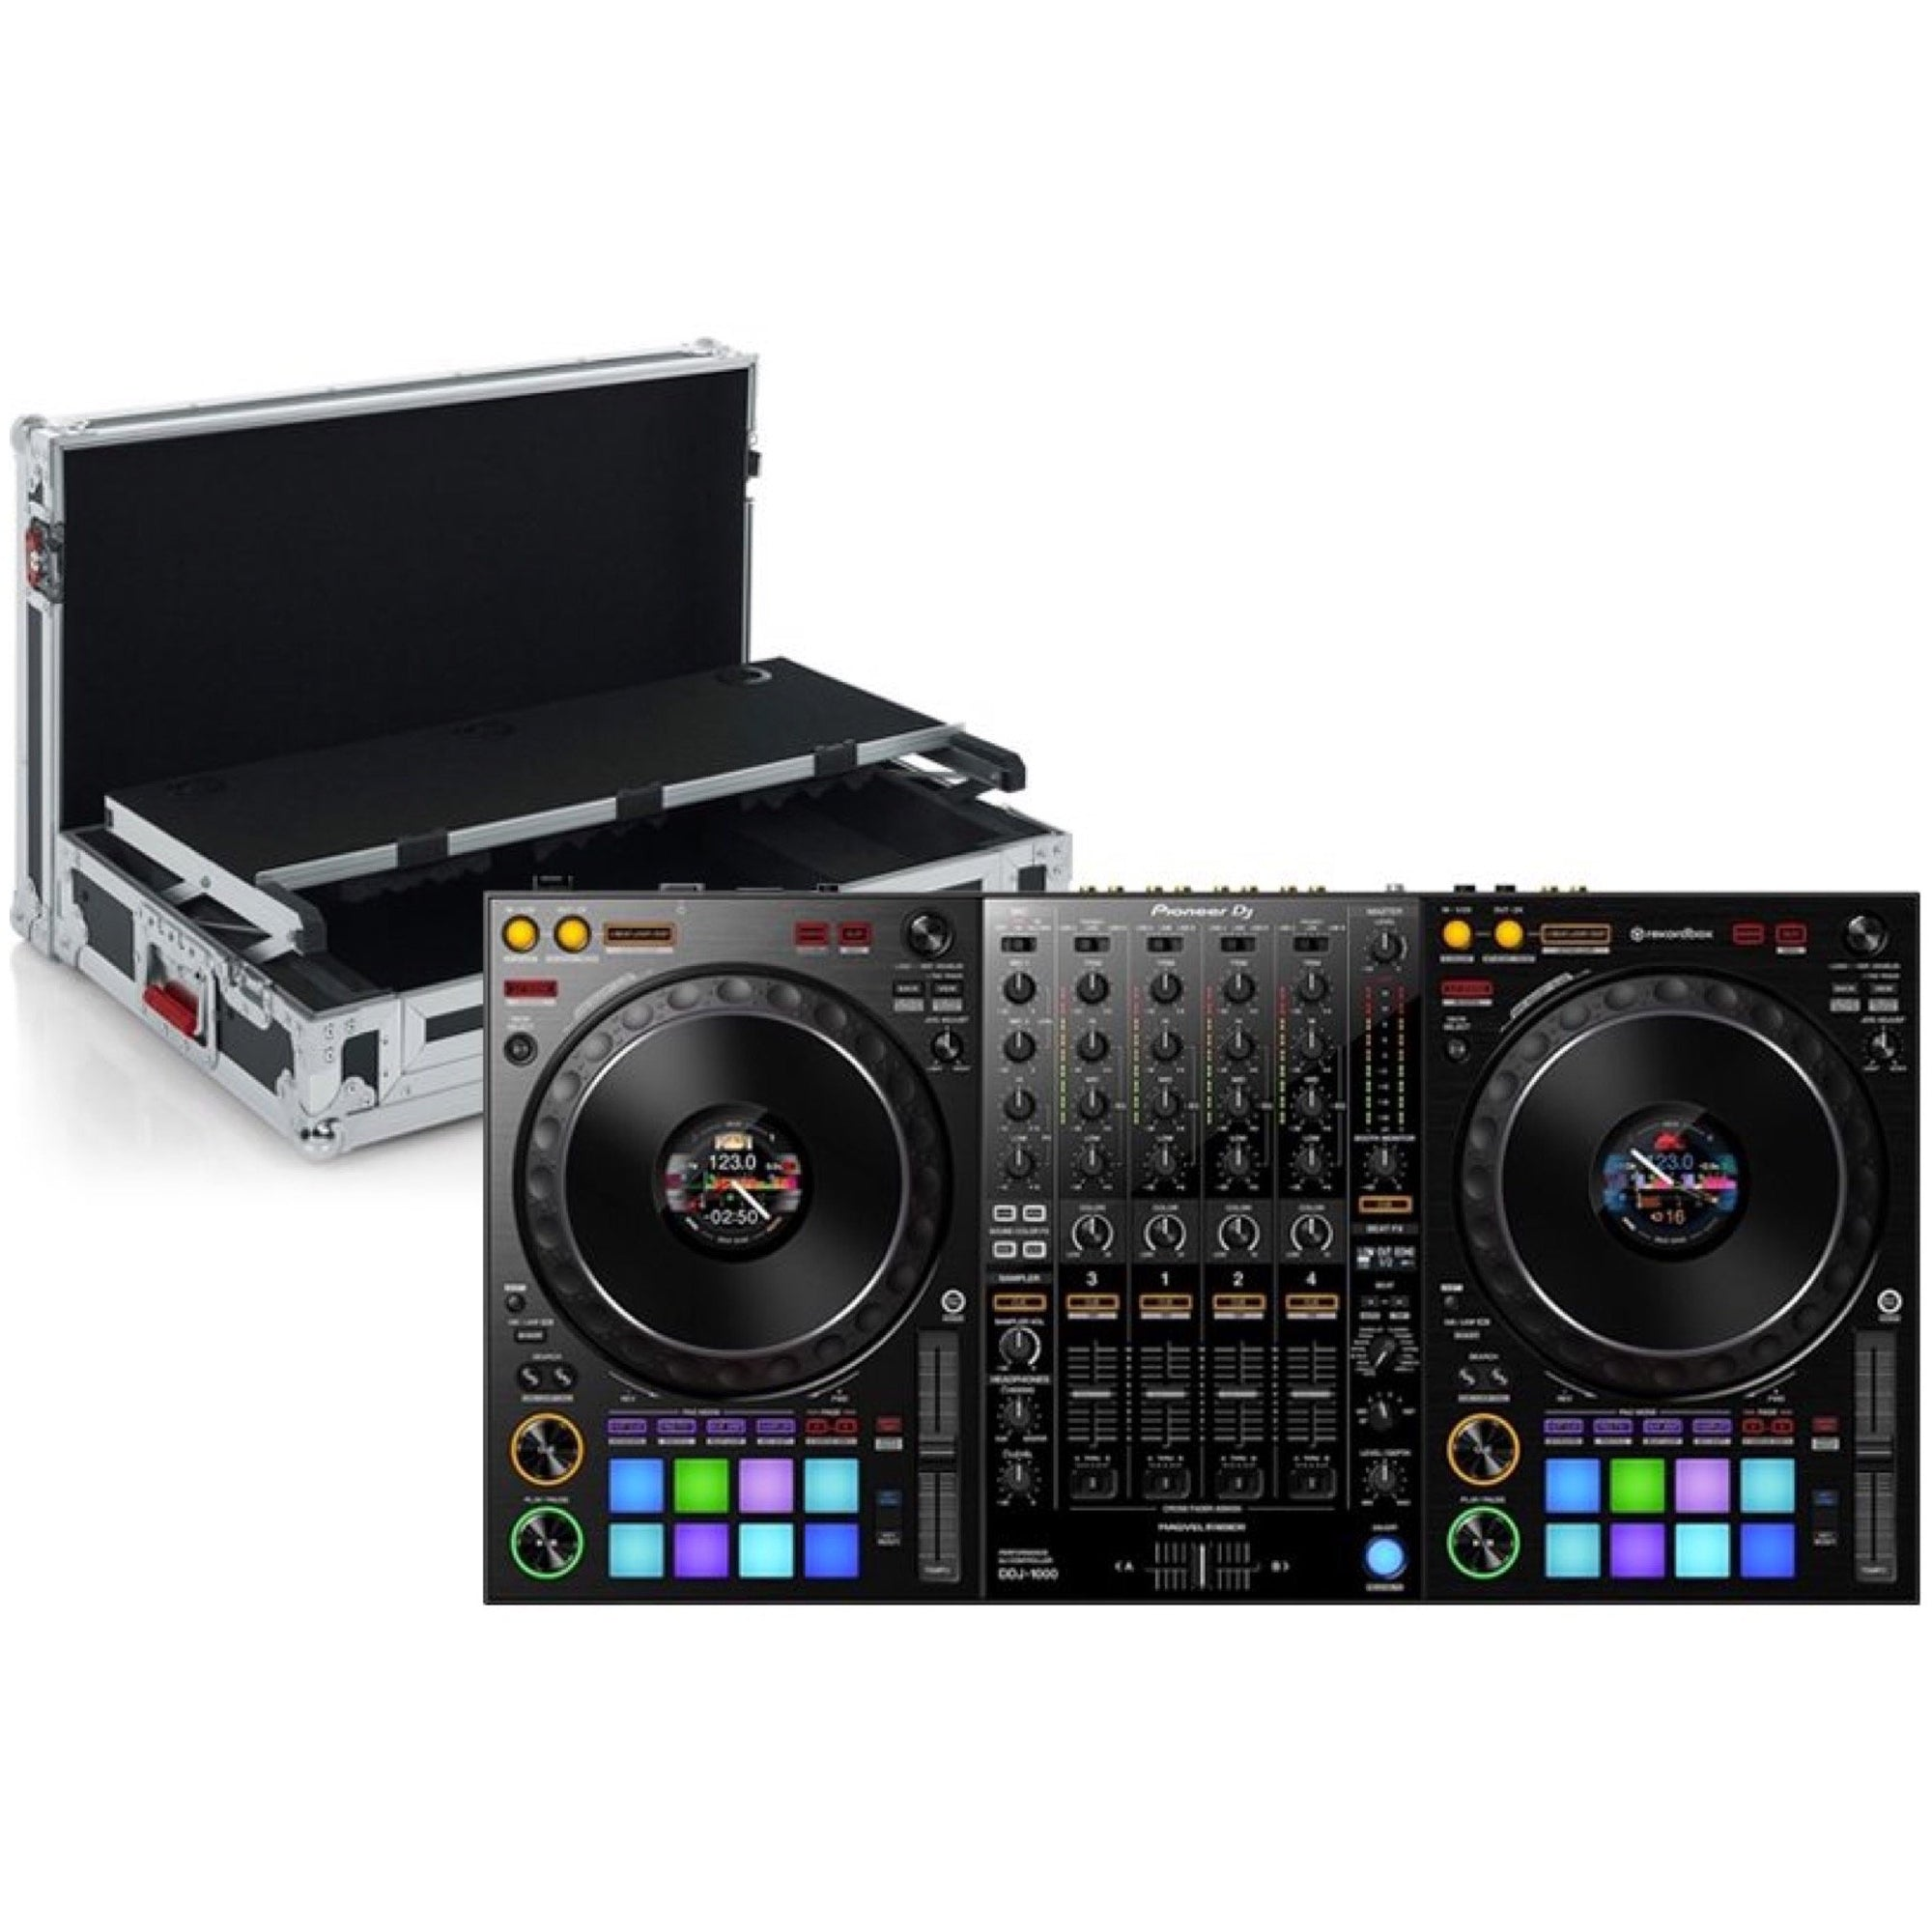 Pioneer DDJ-1000 Professional Controller for Rekordbox DJ, with Gator Case